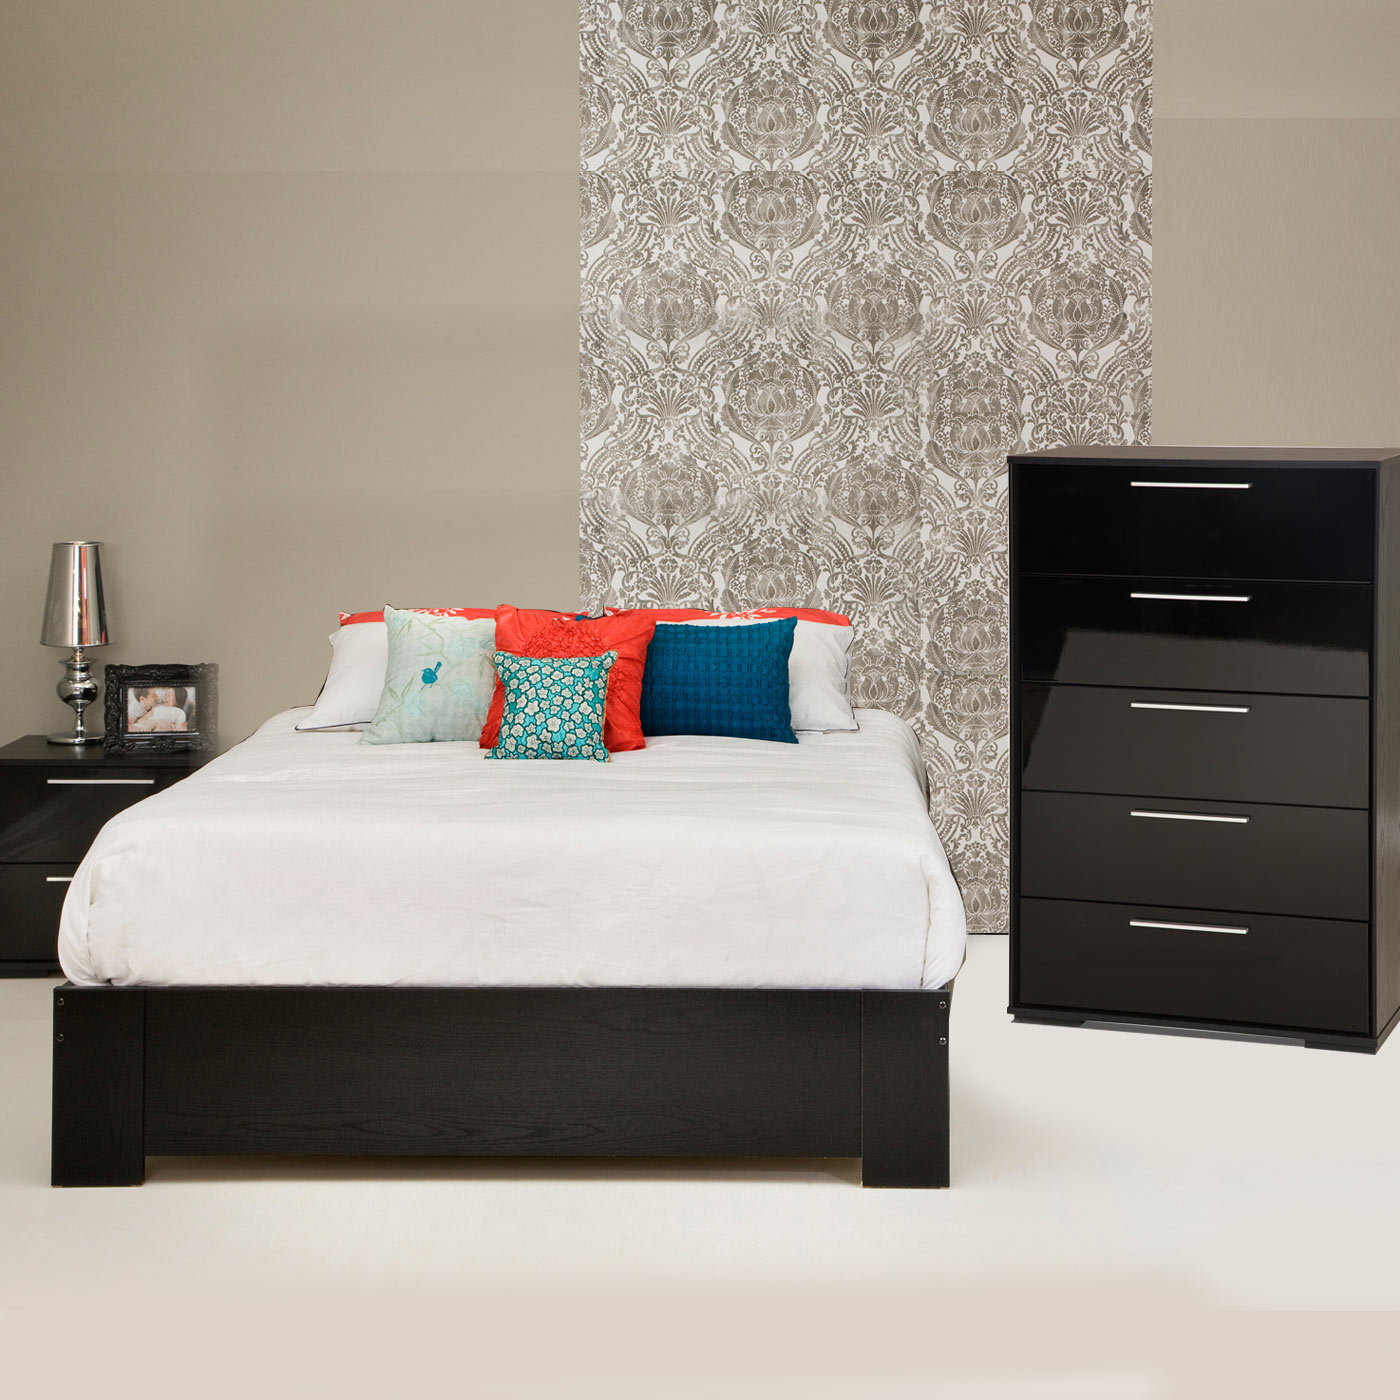 Southshore Mikka 3 Piece Bedroom Set Flexible Queen Platform Bed Mikka 5 Drawer Chest And Nightstand In Black Oak